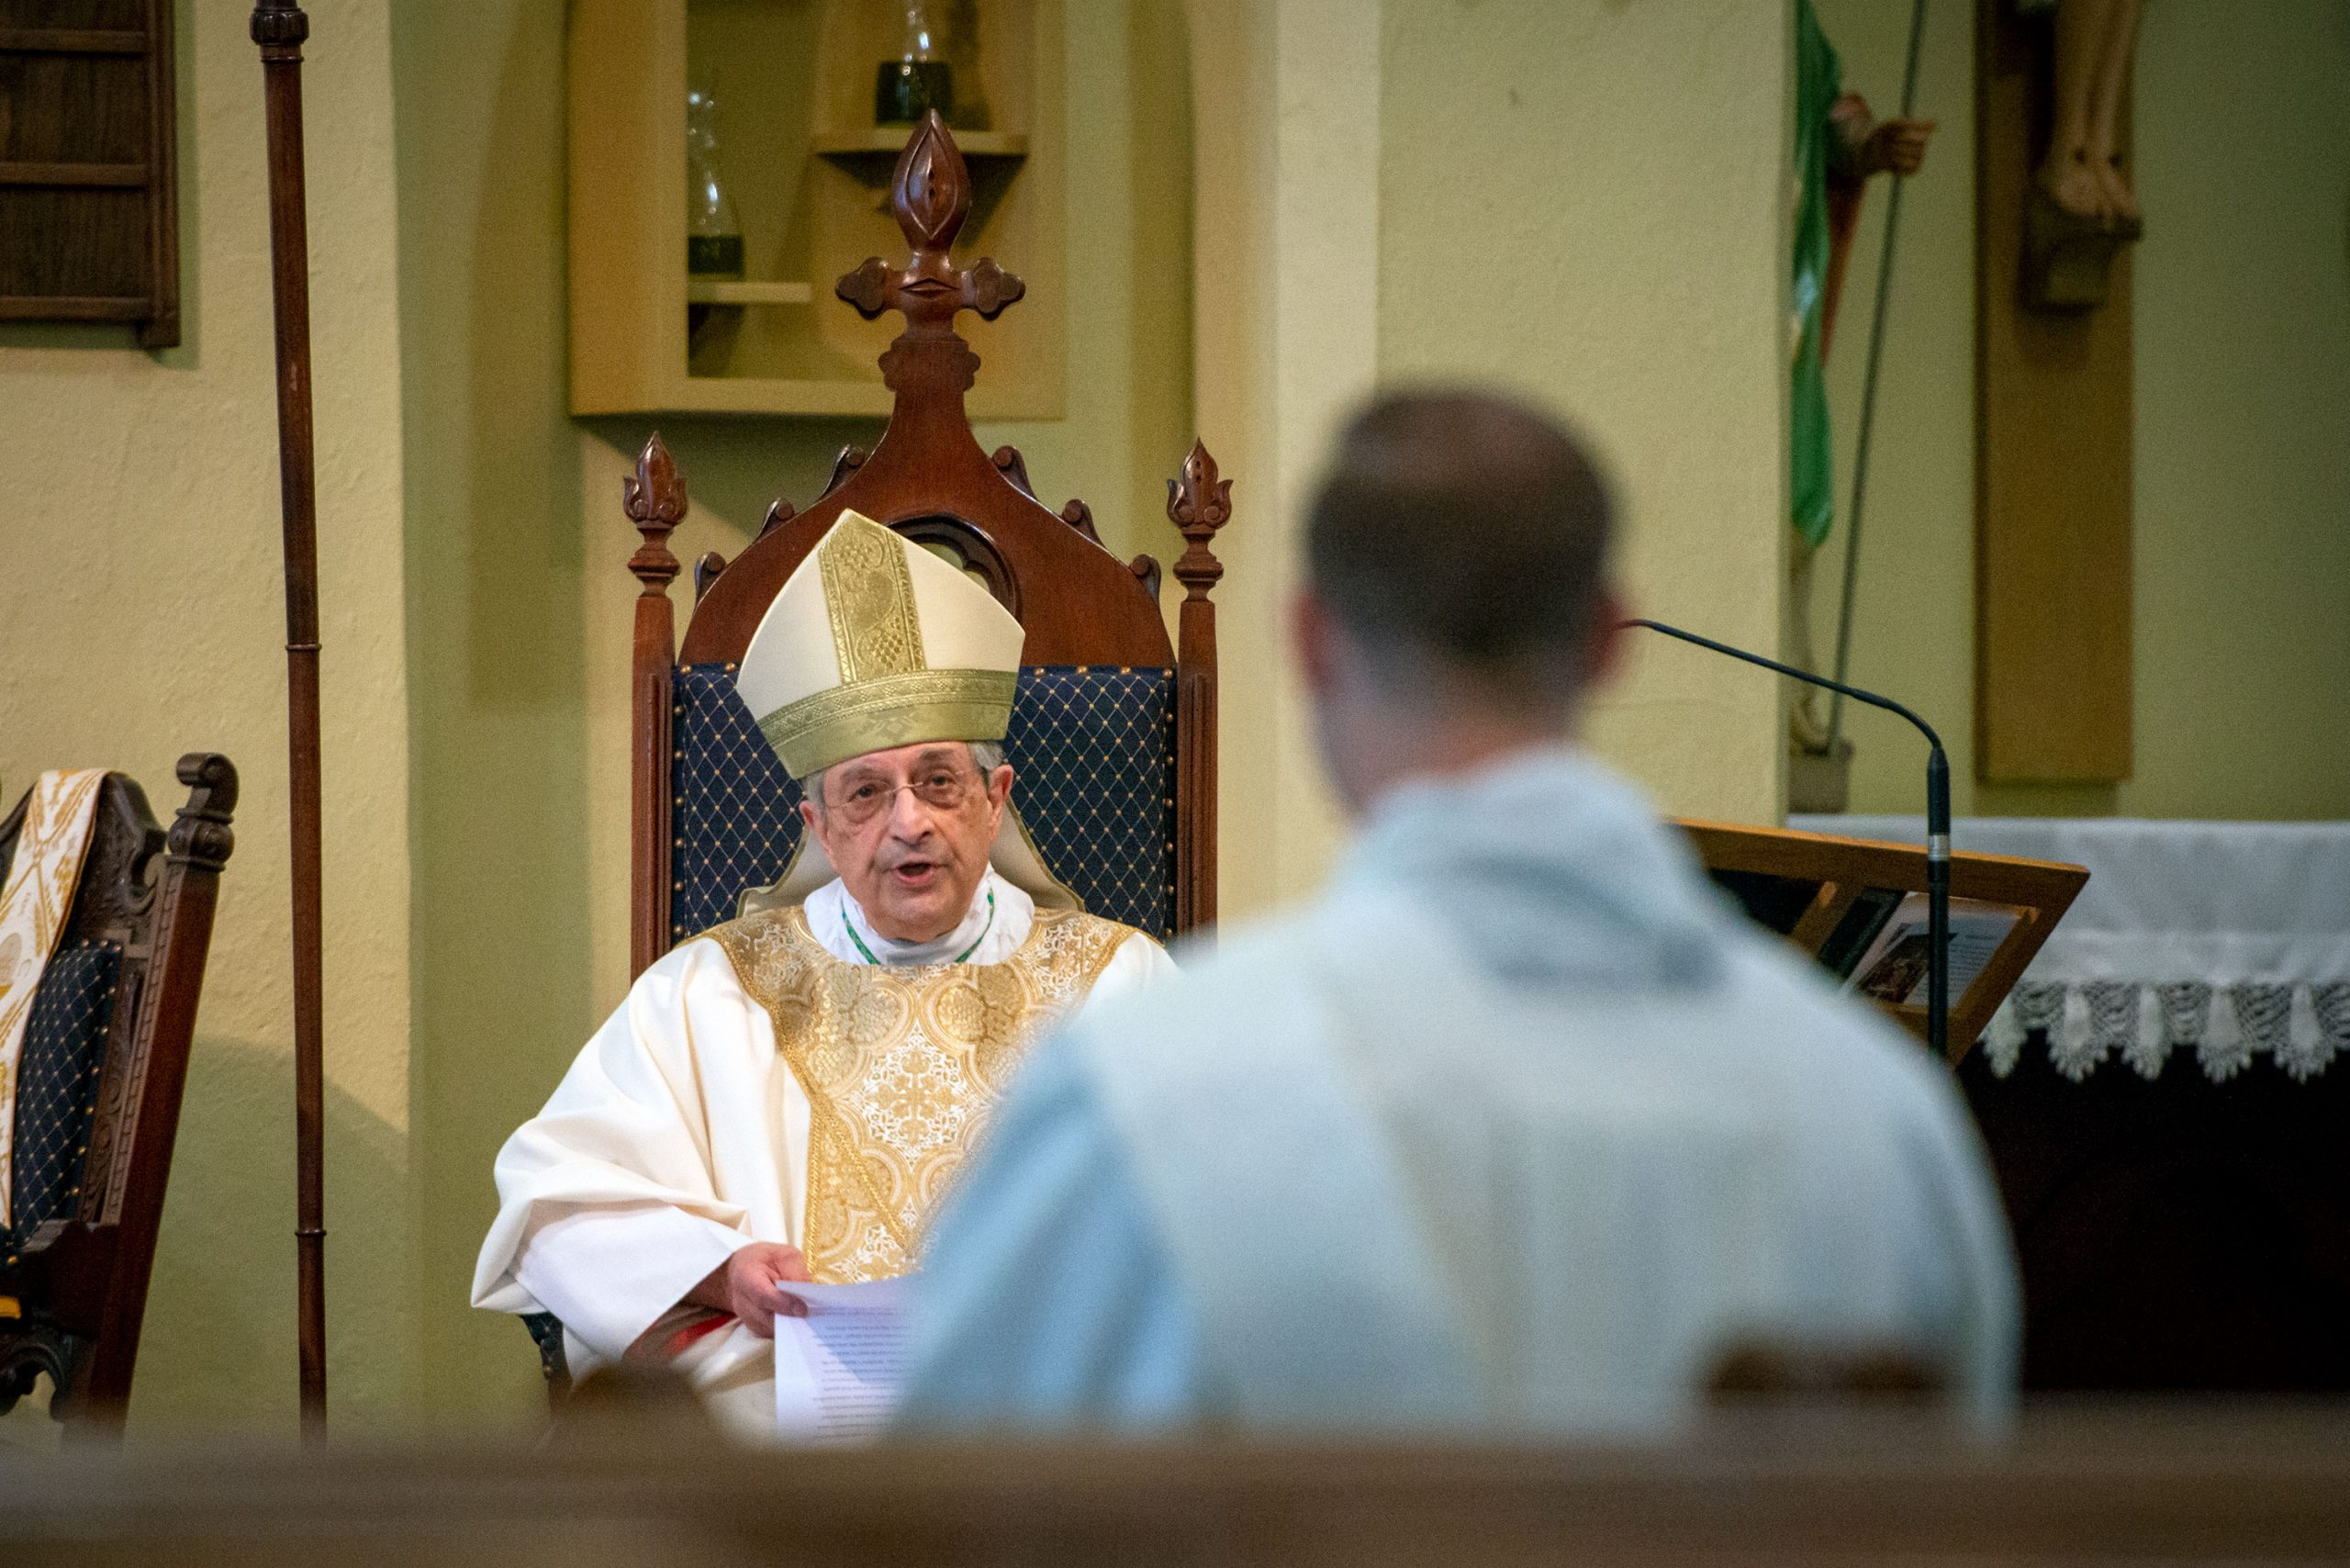 Father Martuscello listens as Bishop Matano delivers the homily.